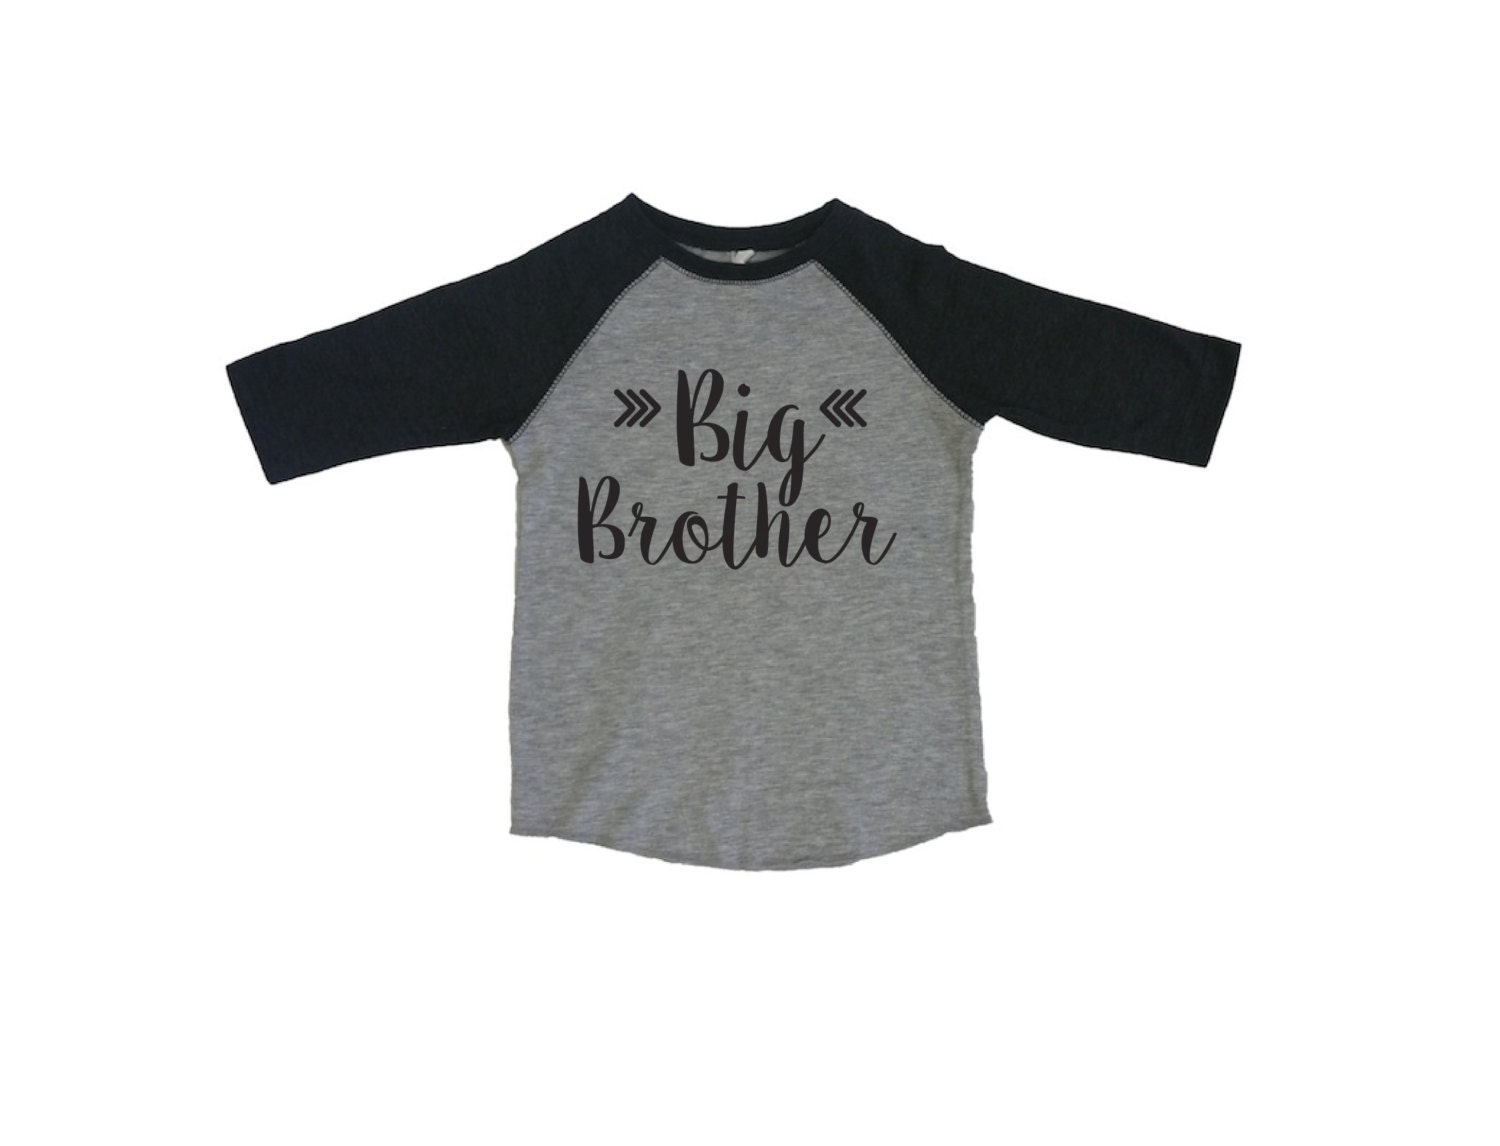 Be Unique. Shop big brother kids t-shirts created by independent artists from around the globe. We print the highest quality big brother kids t-shirts on the internet.